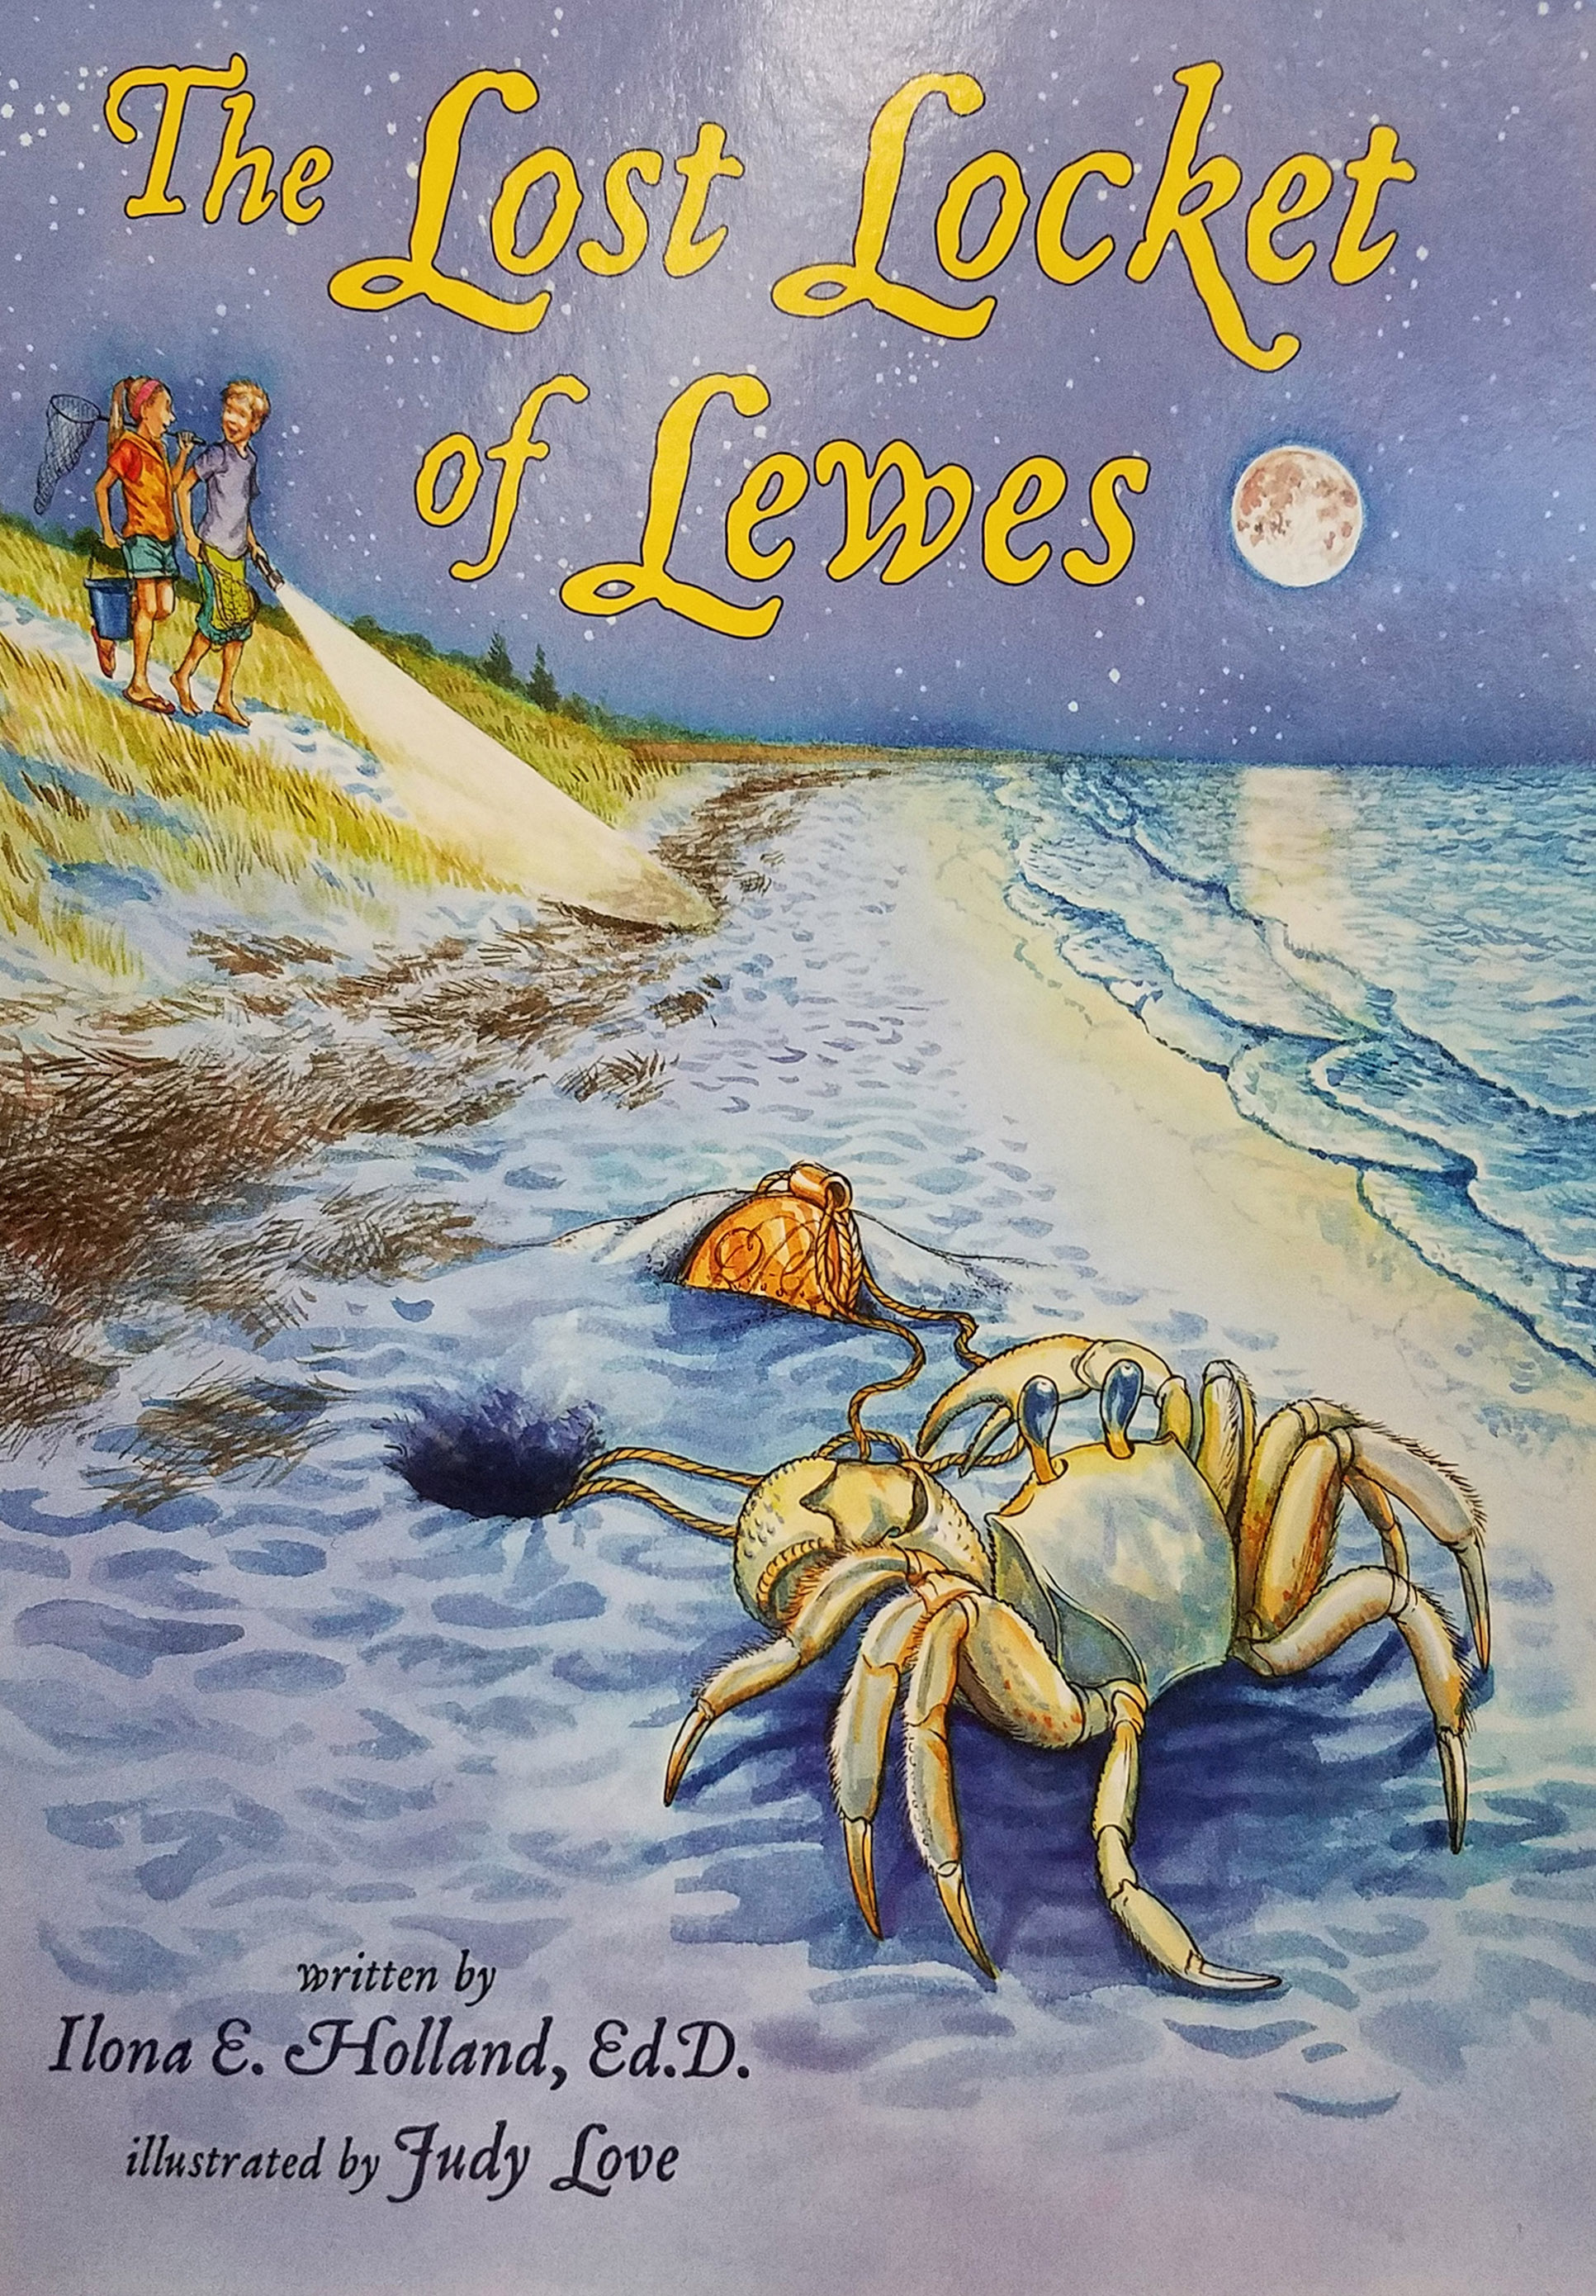 The Lost Locket of Lewes, Ilona E Holland, illustrated by Judy Love, 2018, 24 pp, PAPERBACK. Prices reflect the cost of the book PLUS S&H fee of $3.00